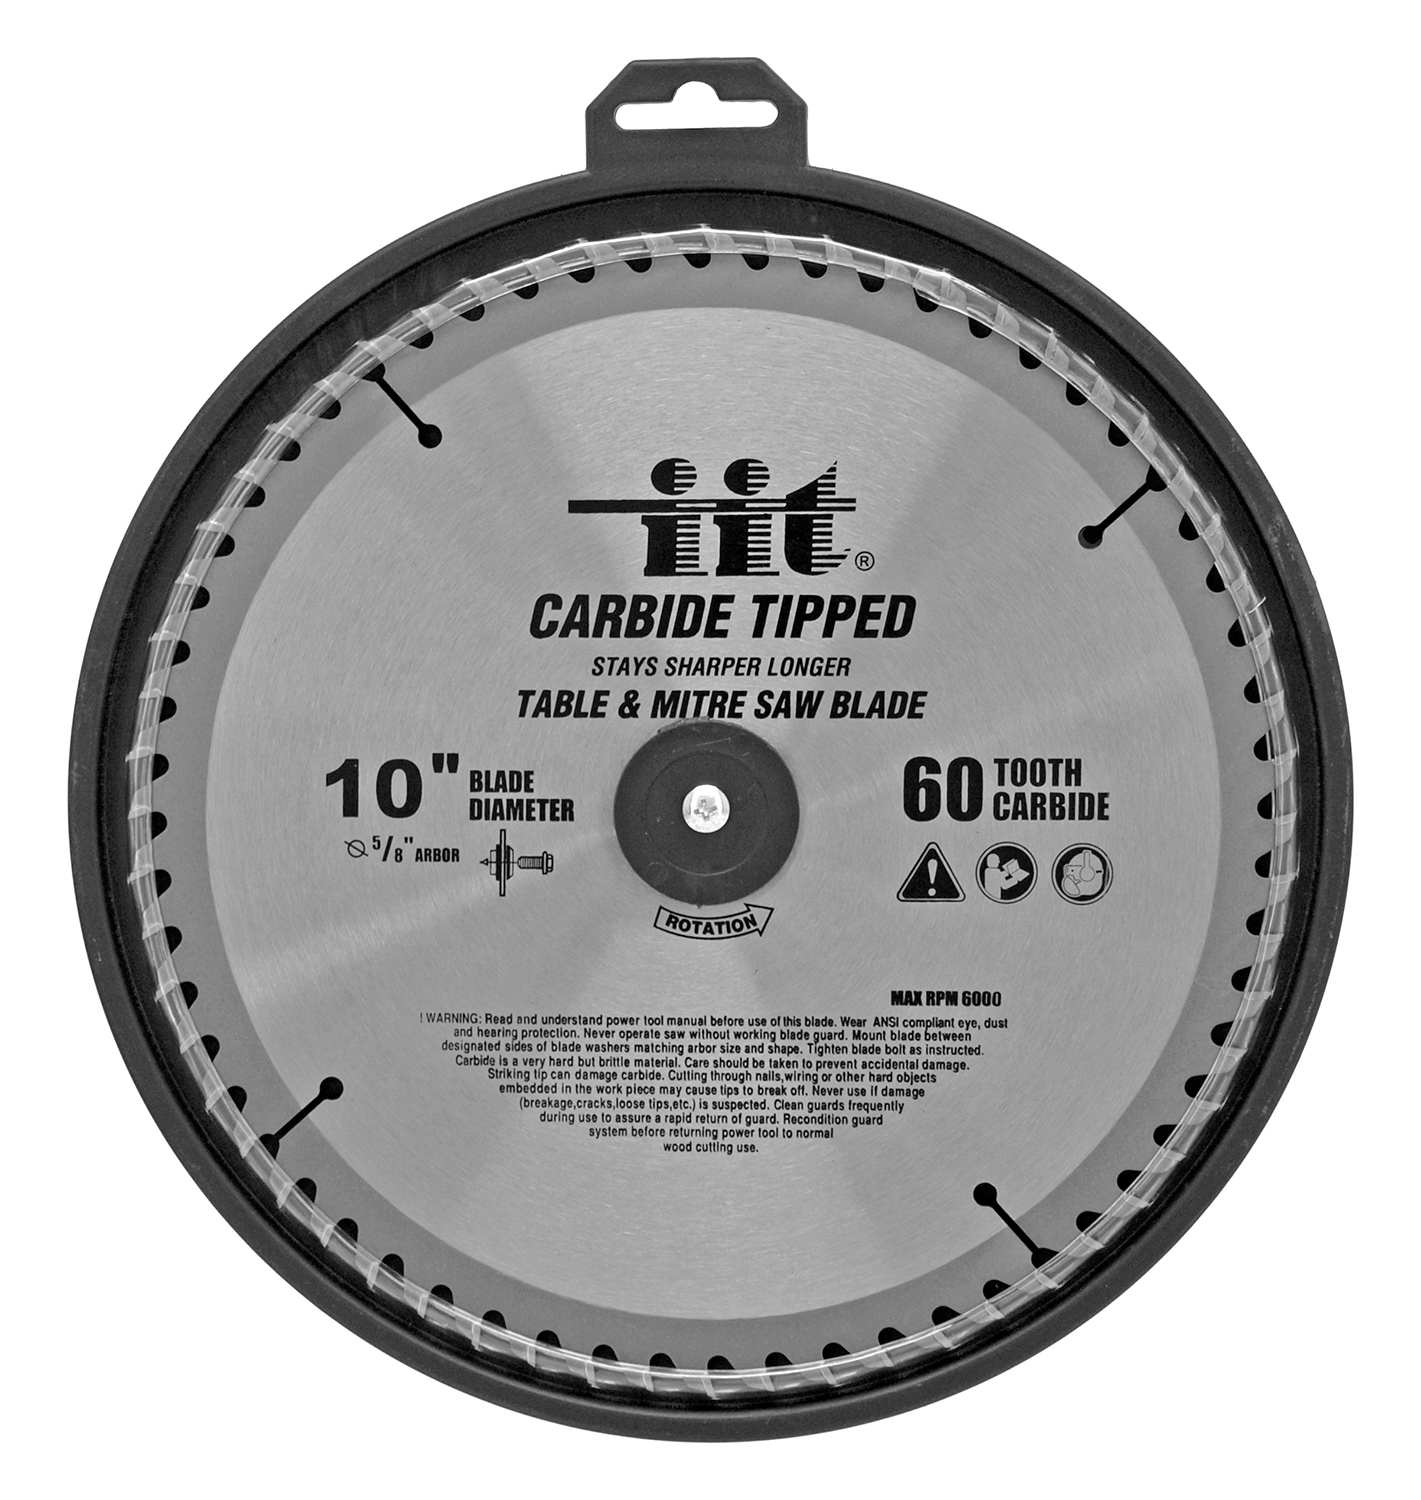 10 in Carbide Tipped 60 Tooth Table and Mitre Saw Blade